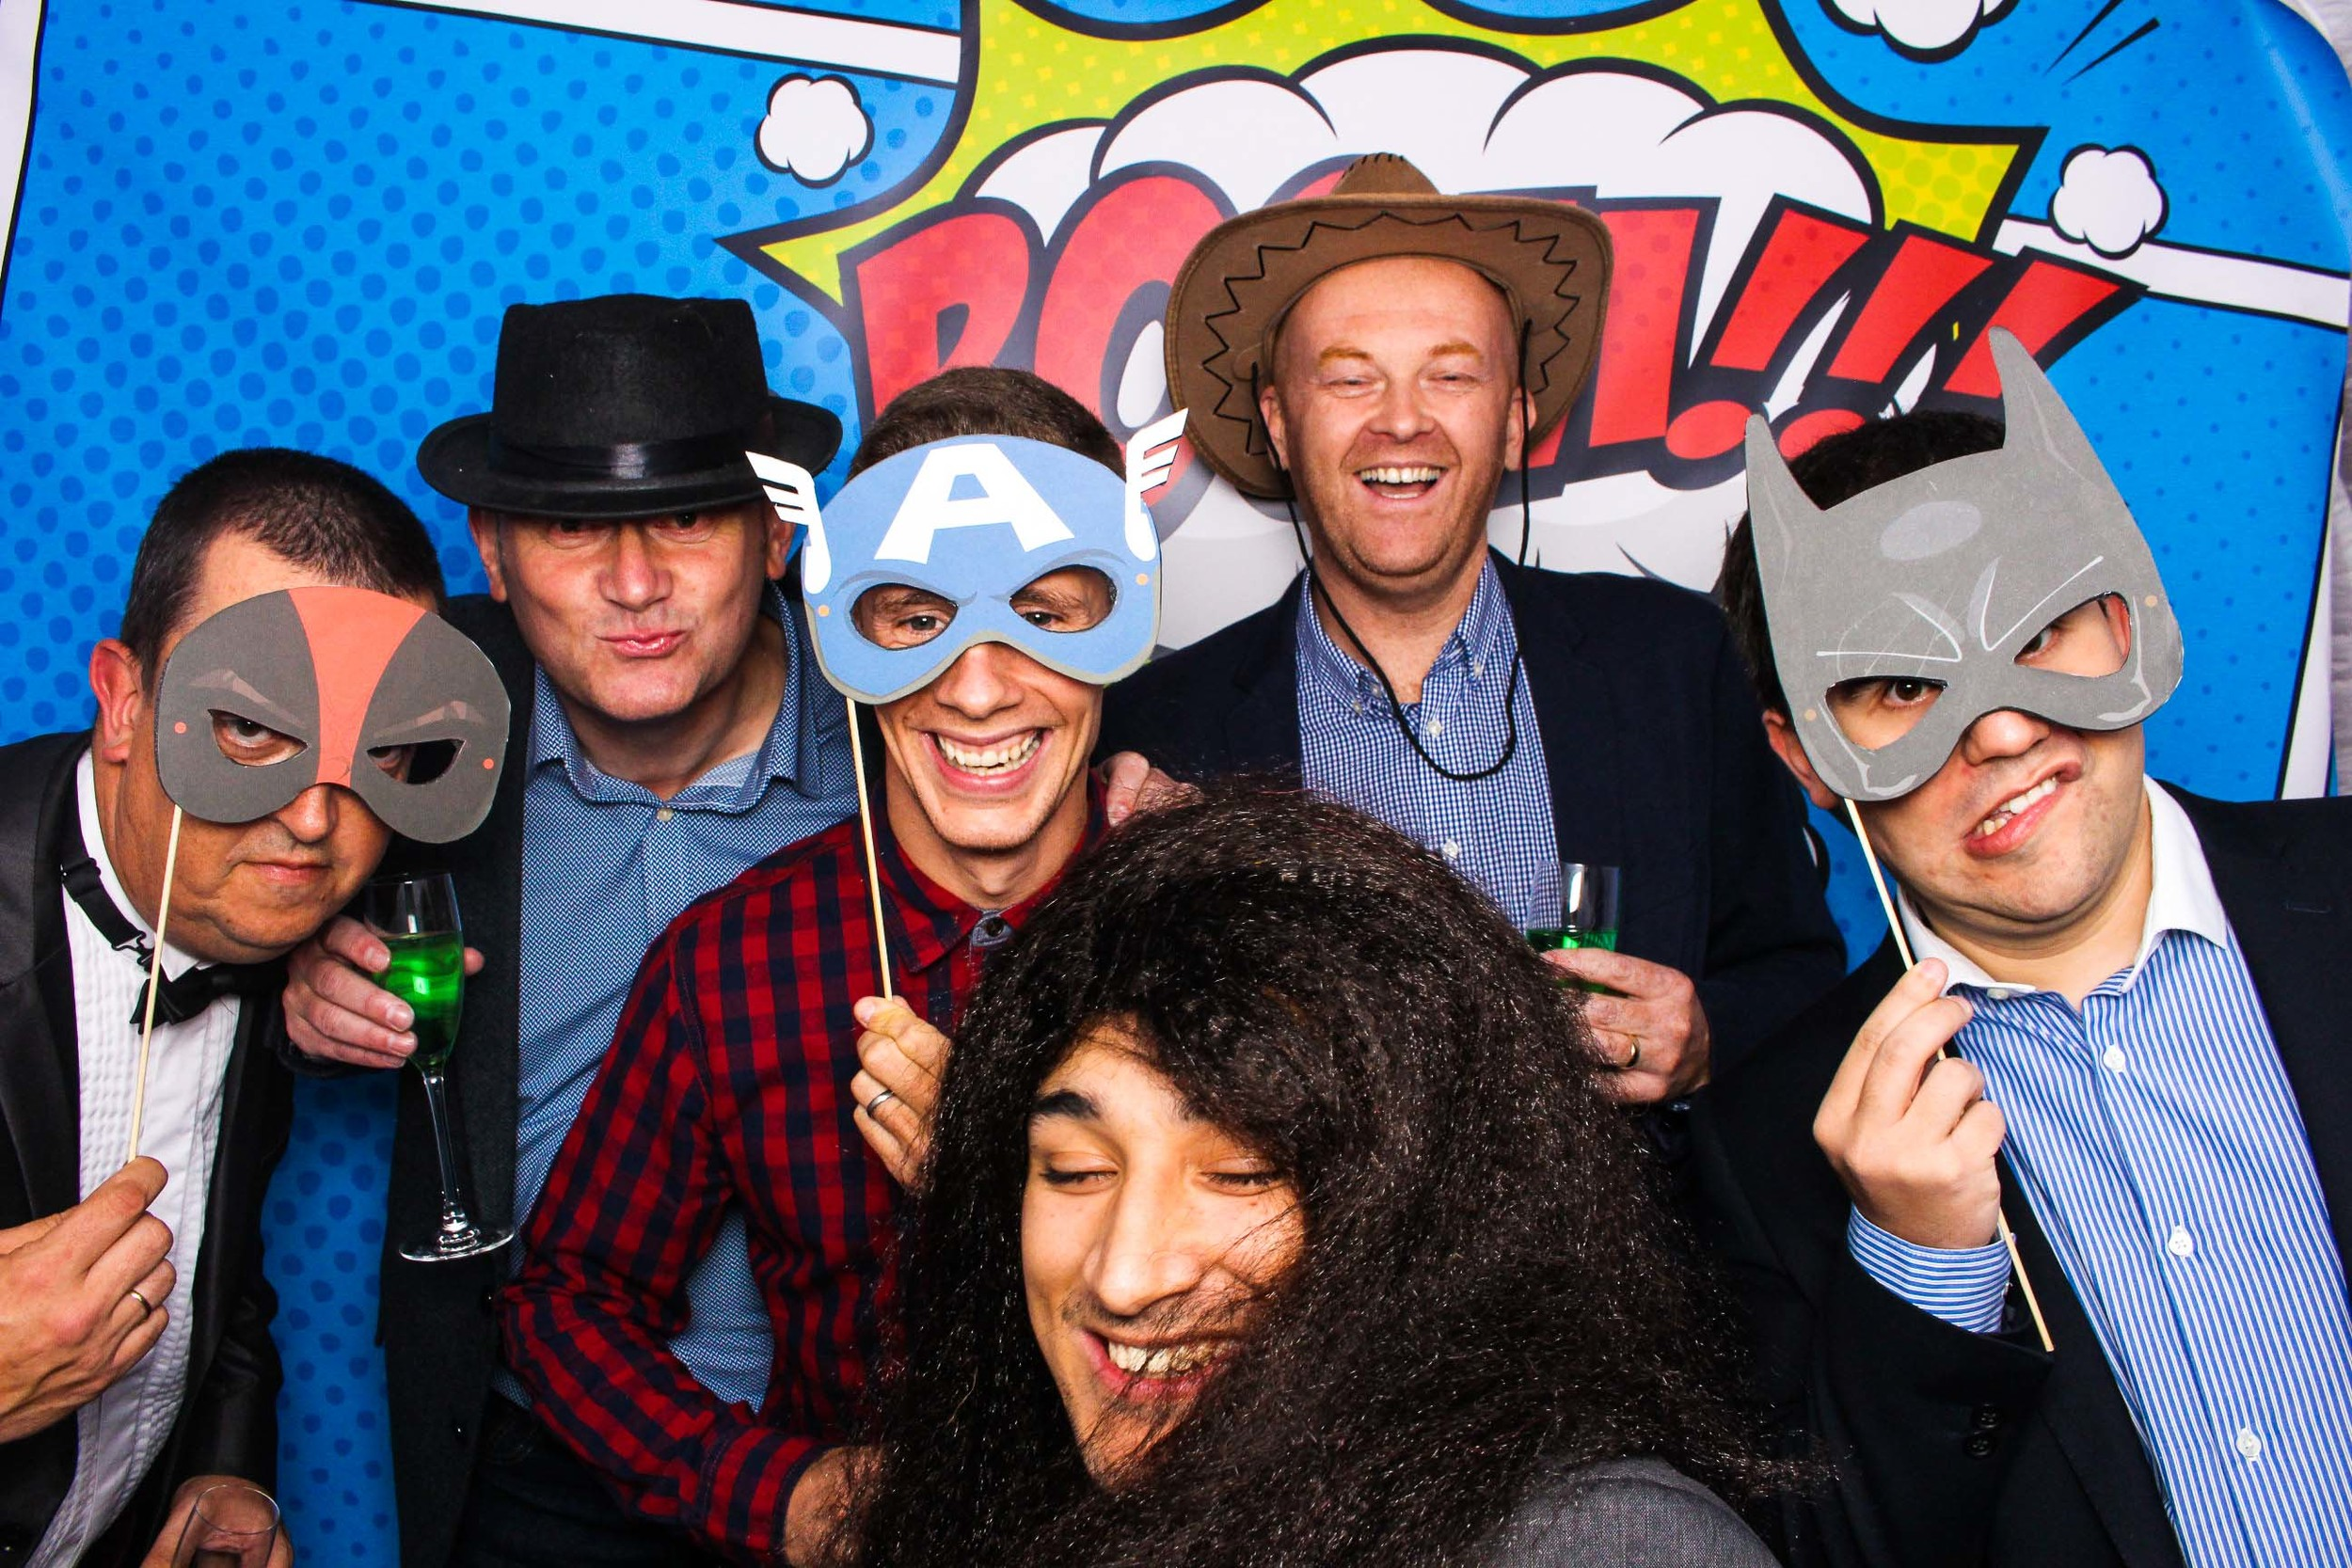 Fotoauto Photo Booth Hire - Shop Direct-23.jpg